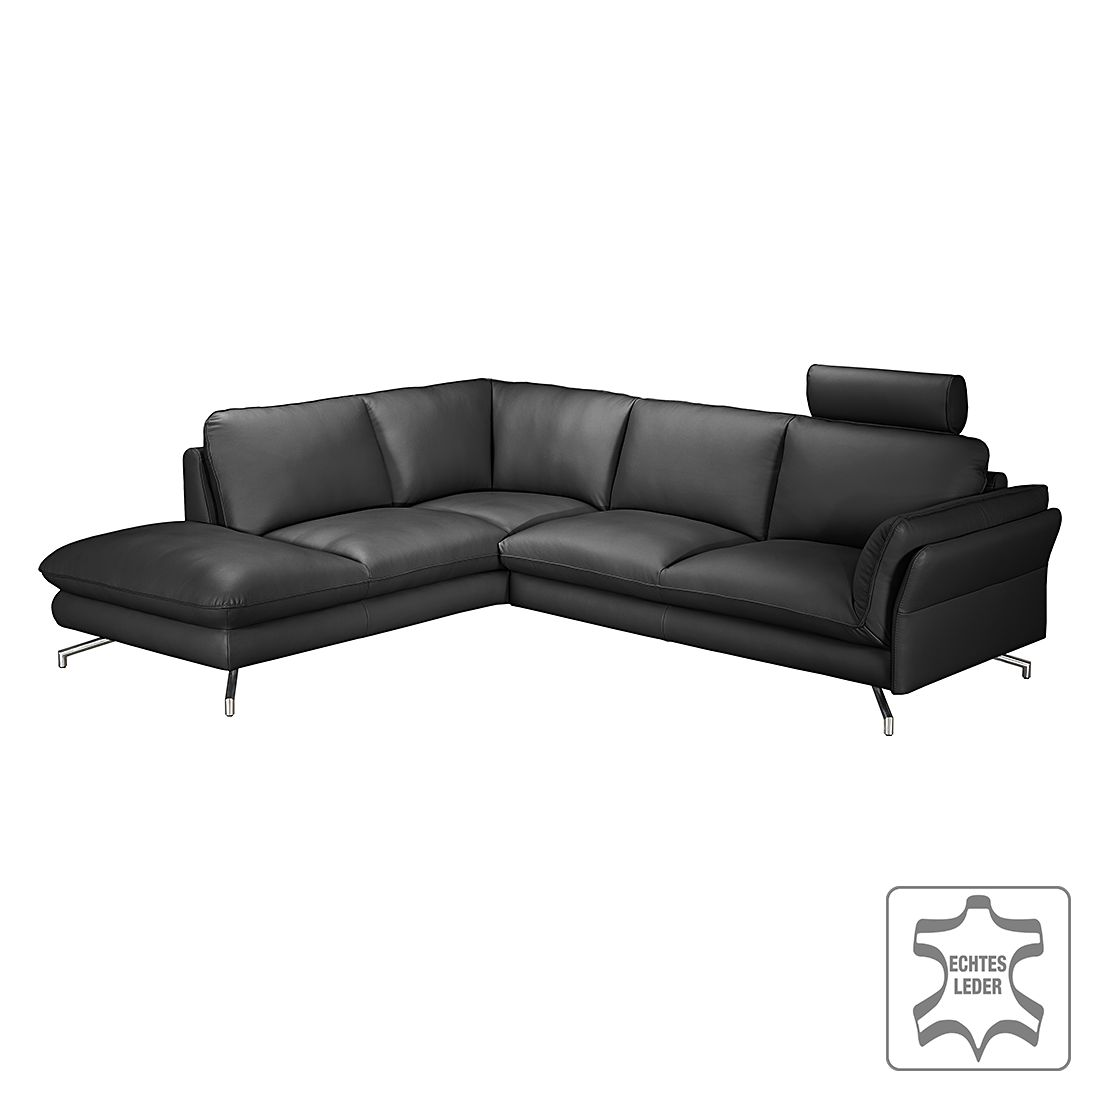 ecksofa enrico echtleder schwarz ottomane davorstehend links mit 2 kopfst tzen loftscape. Black Bedroom Furniture Sets. Home Design Ideas